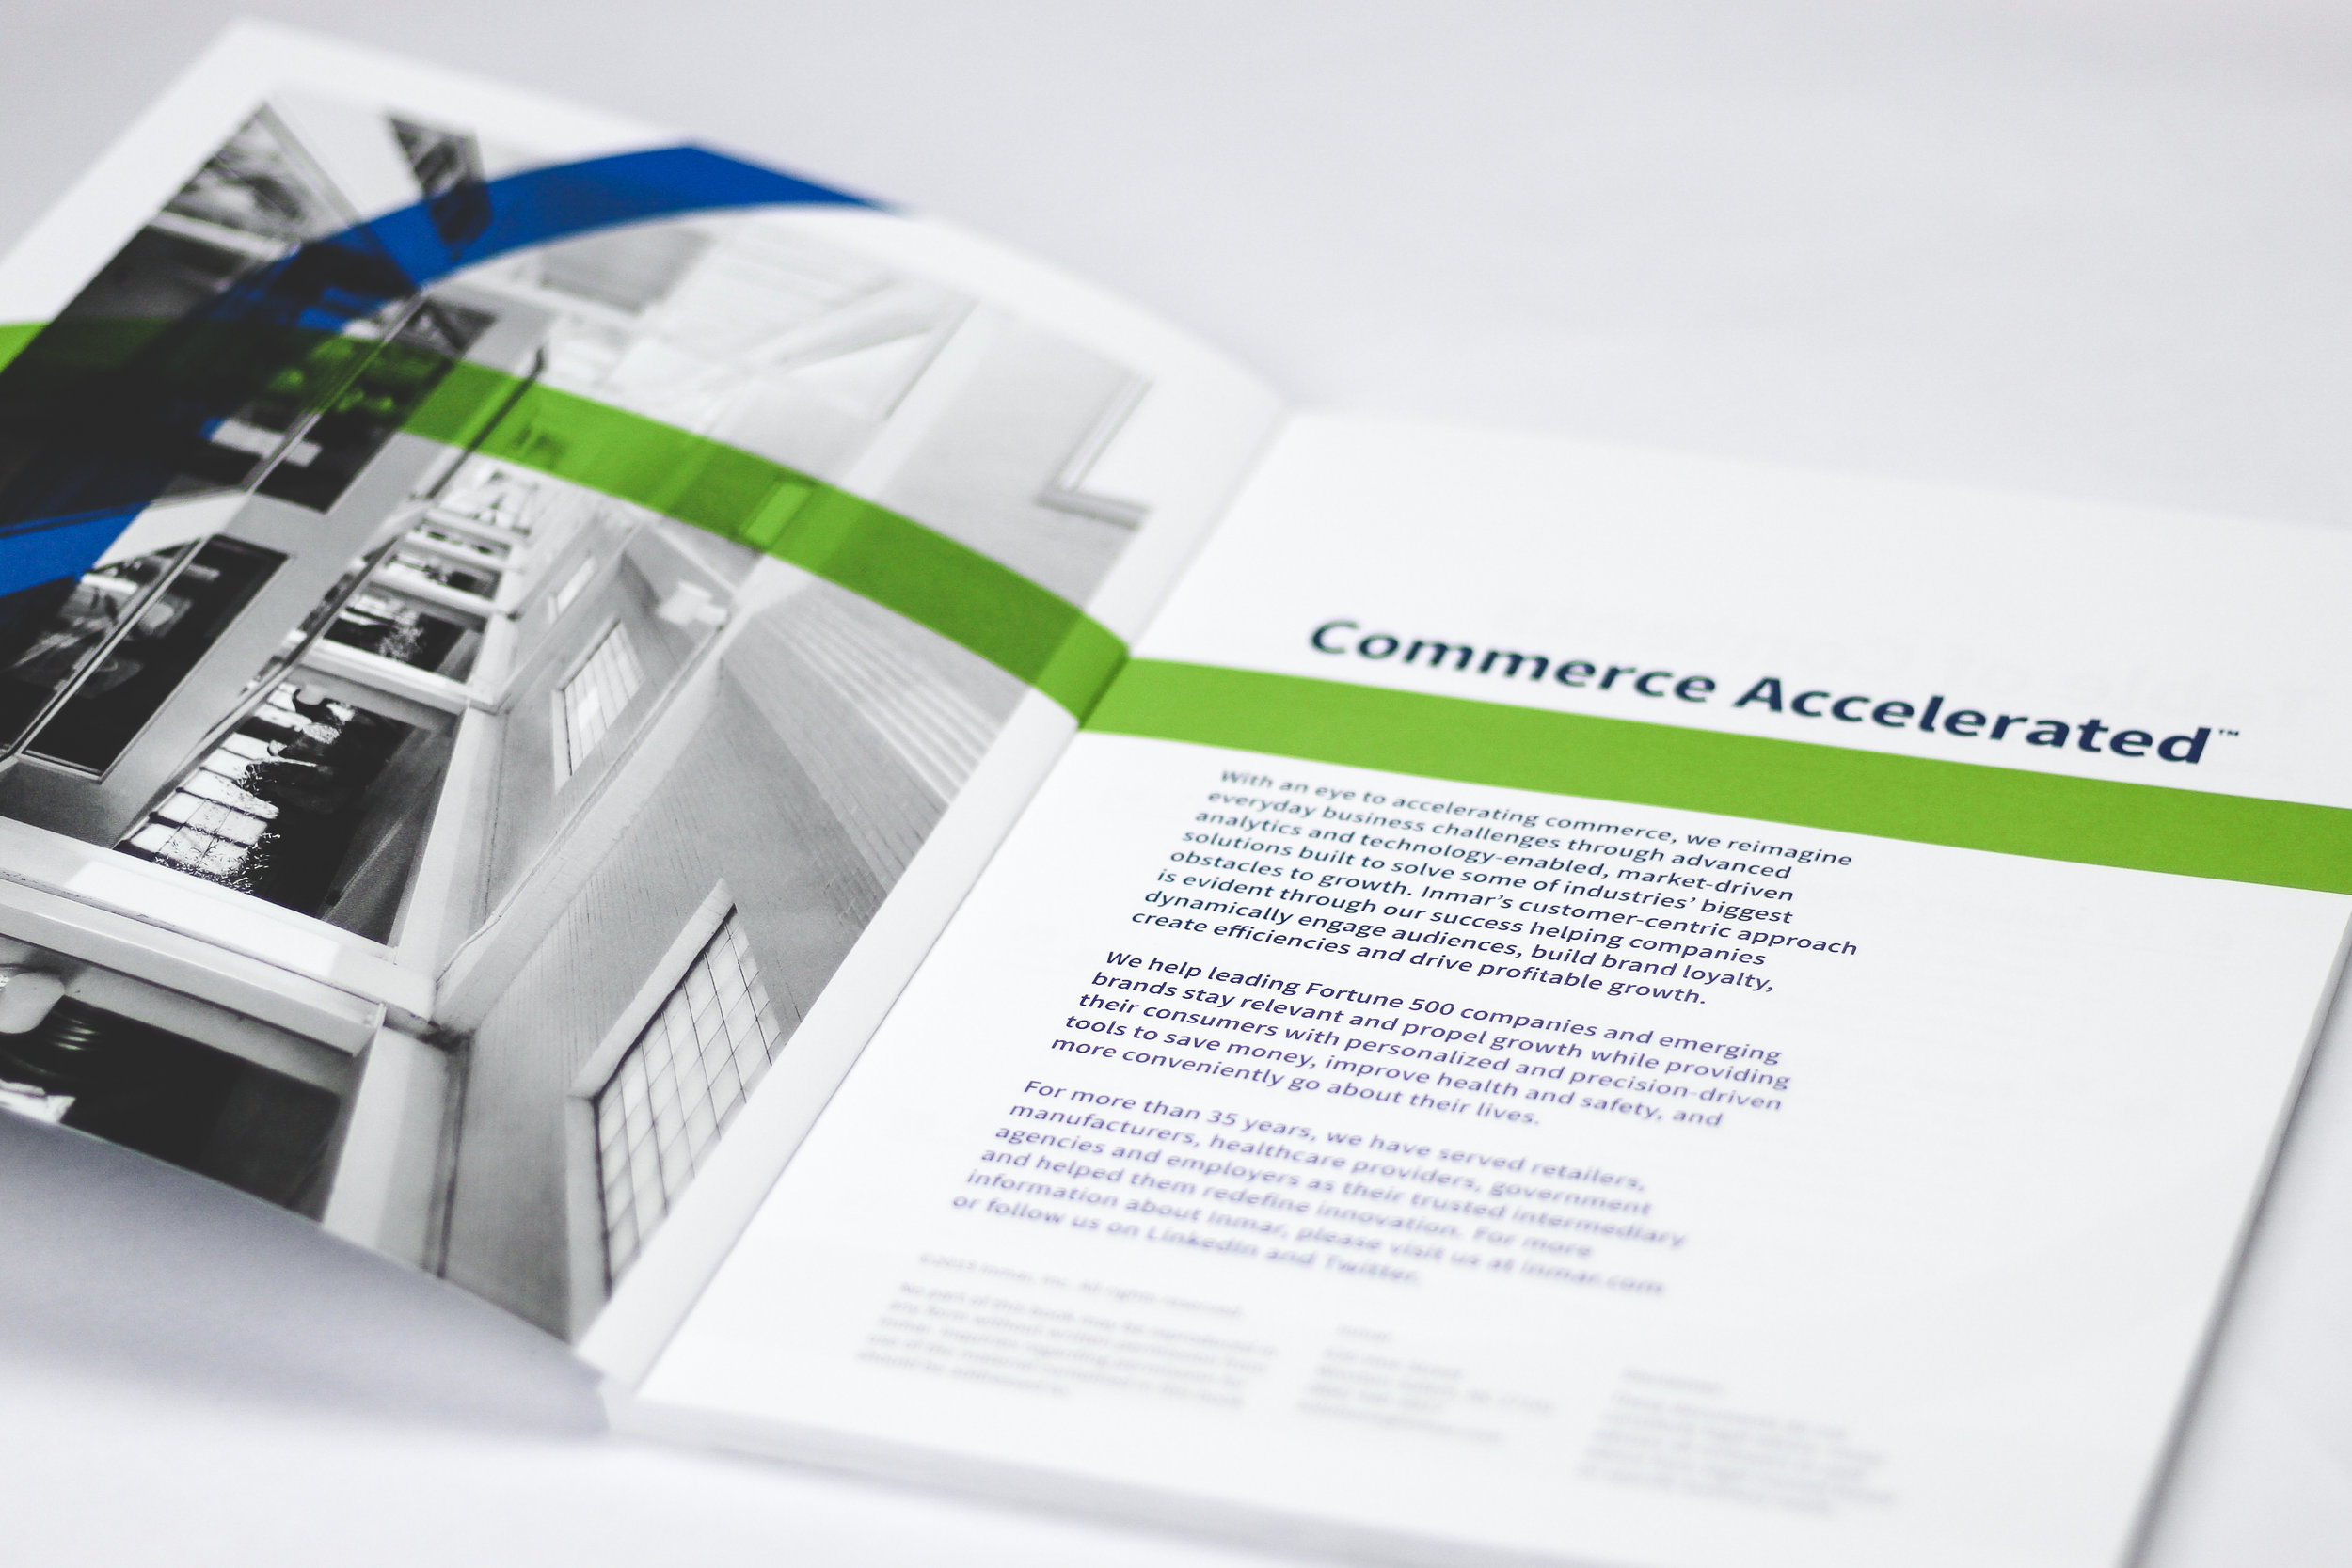 2019 Industry Analysis - I worked as a part of a creative team to help compile, design, style and print a yearly report put out by Inmar, Inc containing shopper data, industry trends and Industry insights by leaders in the marketplace. I specifically focused on whitepaper sections, overall strategy, and layout.